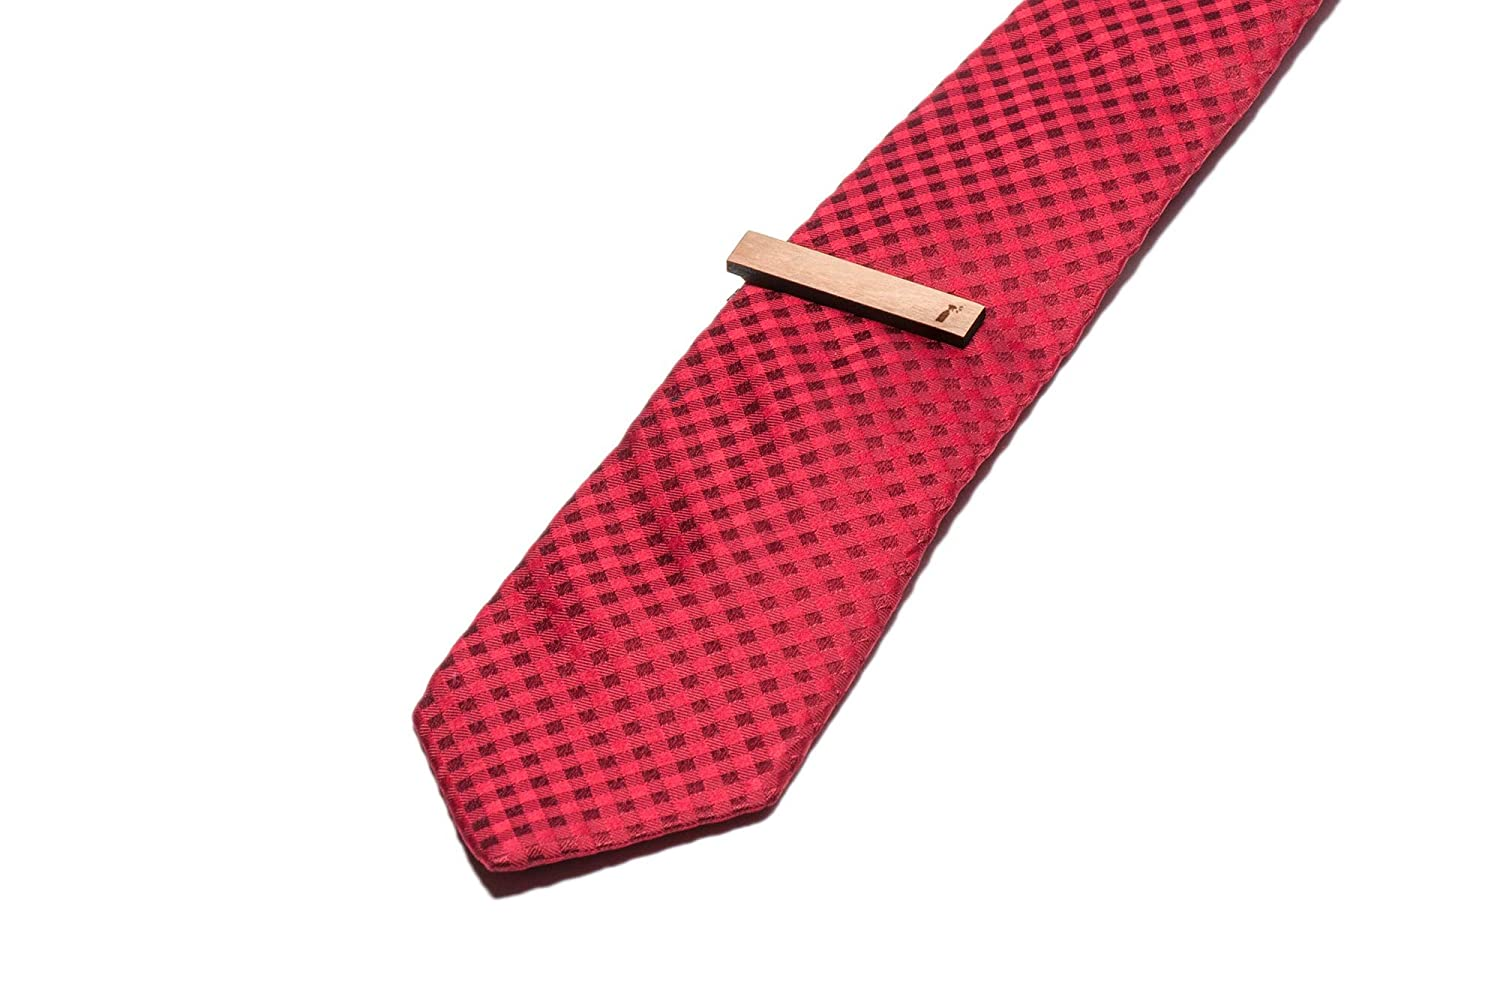 Wooden Accessories Company Wooden Tie Clips with Laser Engraved Spray Bottle Design Cherry Wood Tie Bar Engraved in The USA